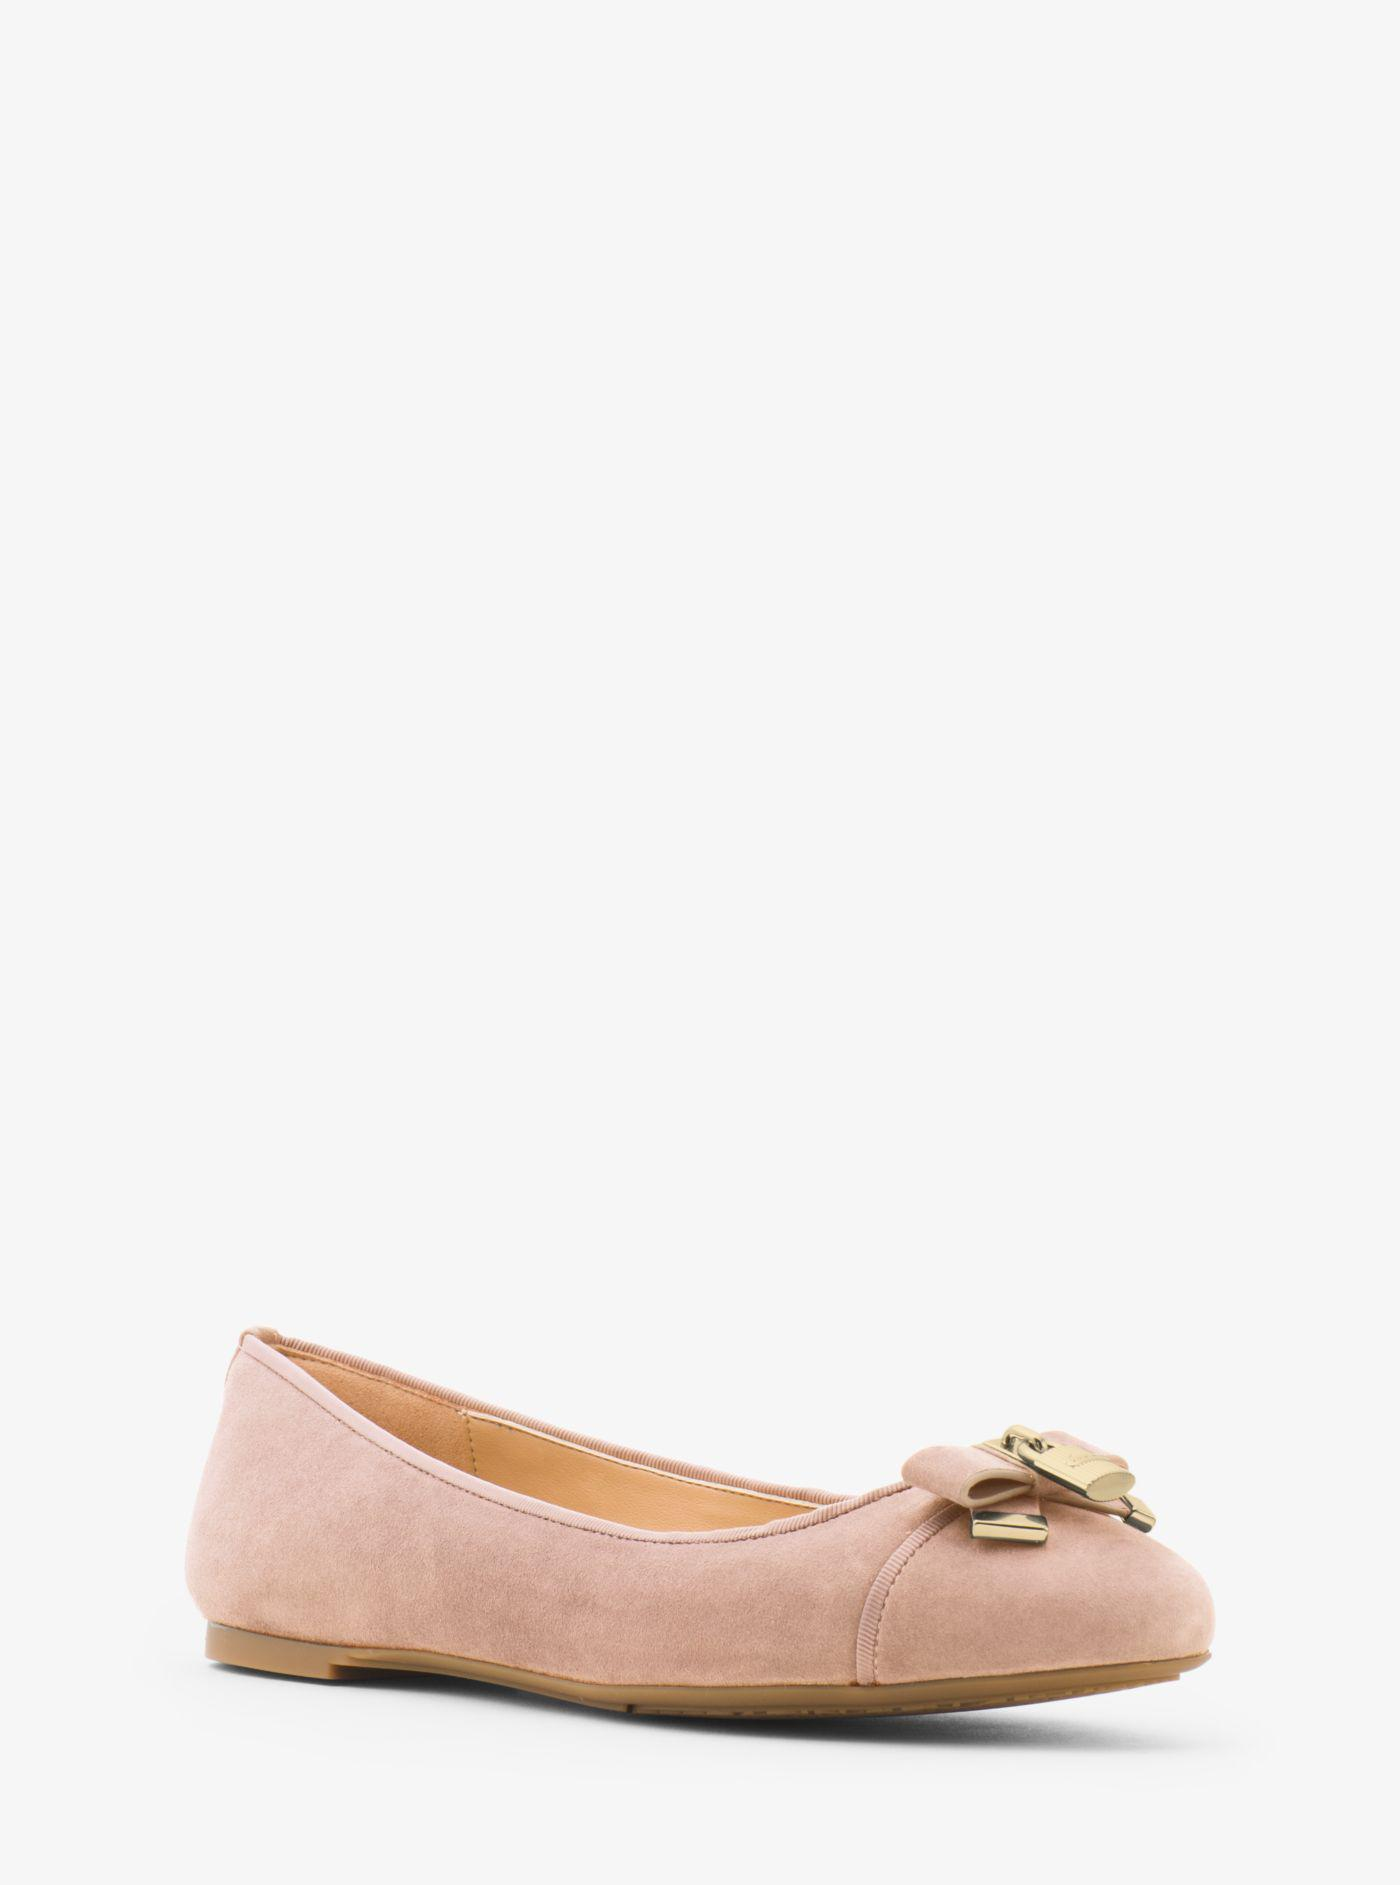 Alice Leather Bow Ballet Flats glLMCP